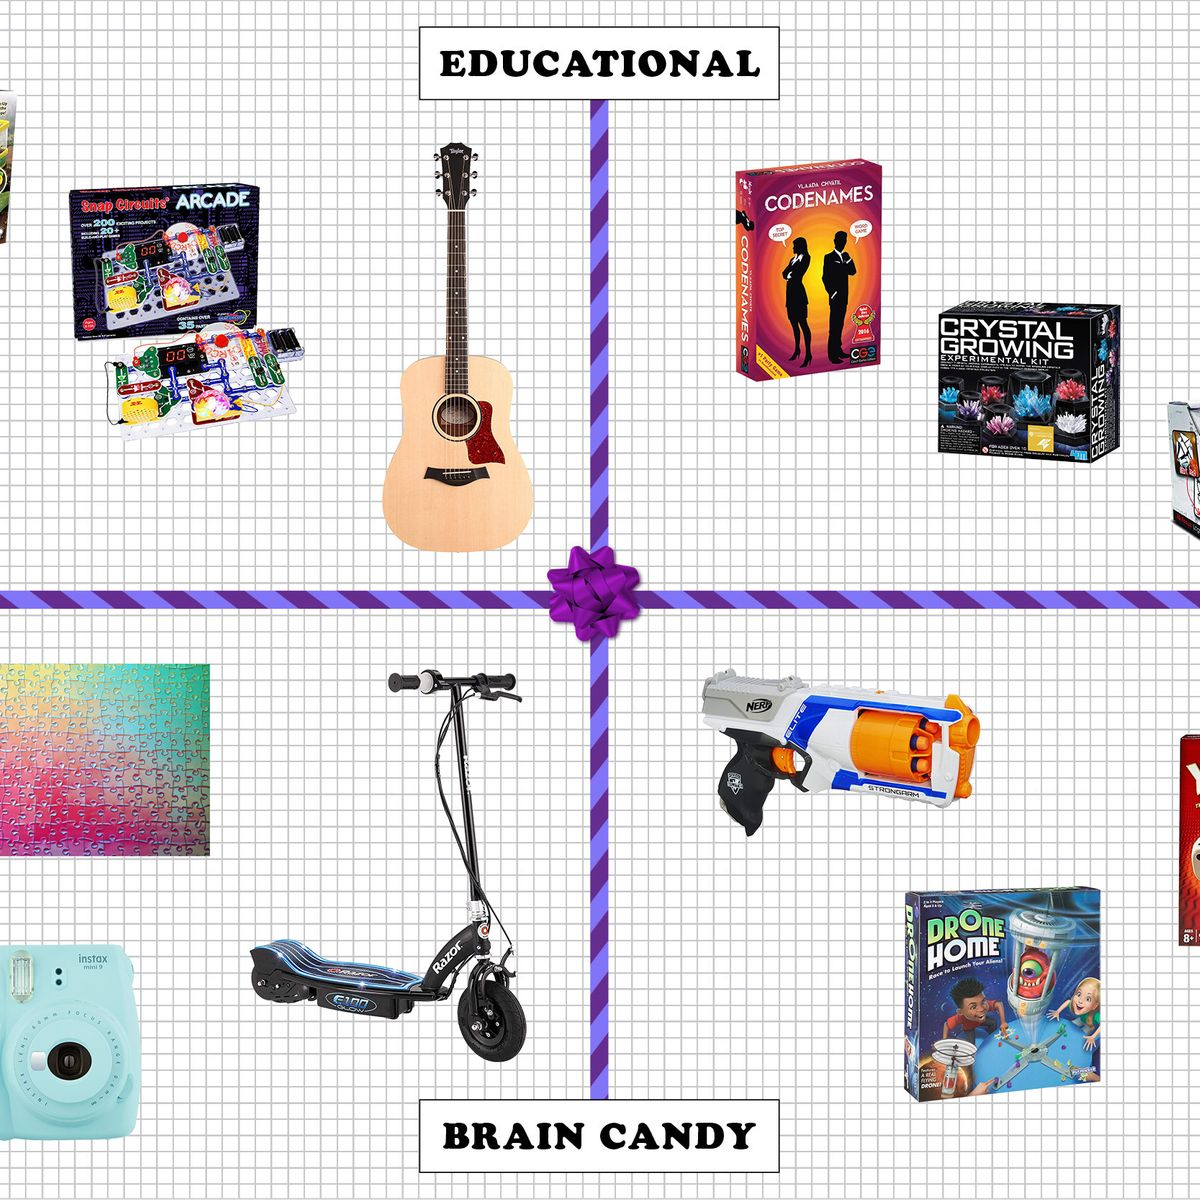 29 Best Gifts for 10 Year Olds 2020 | The Strategist | New York